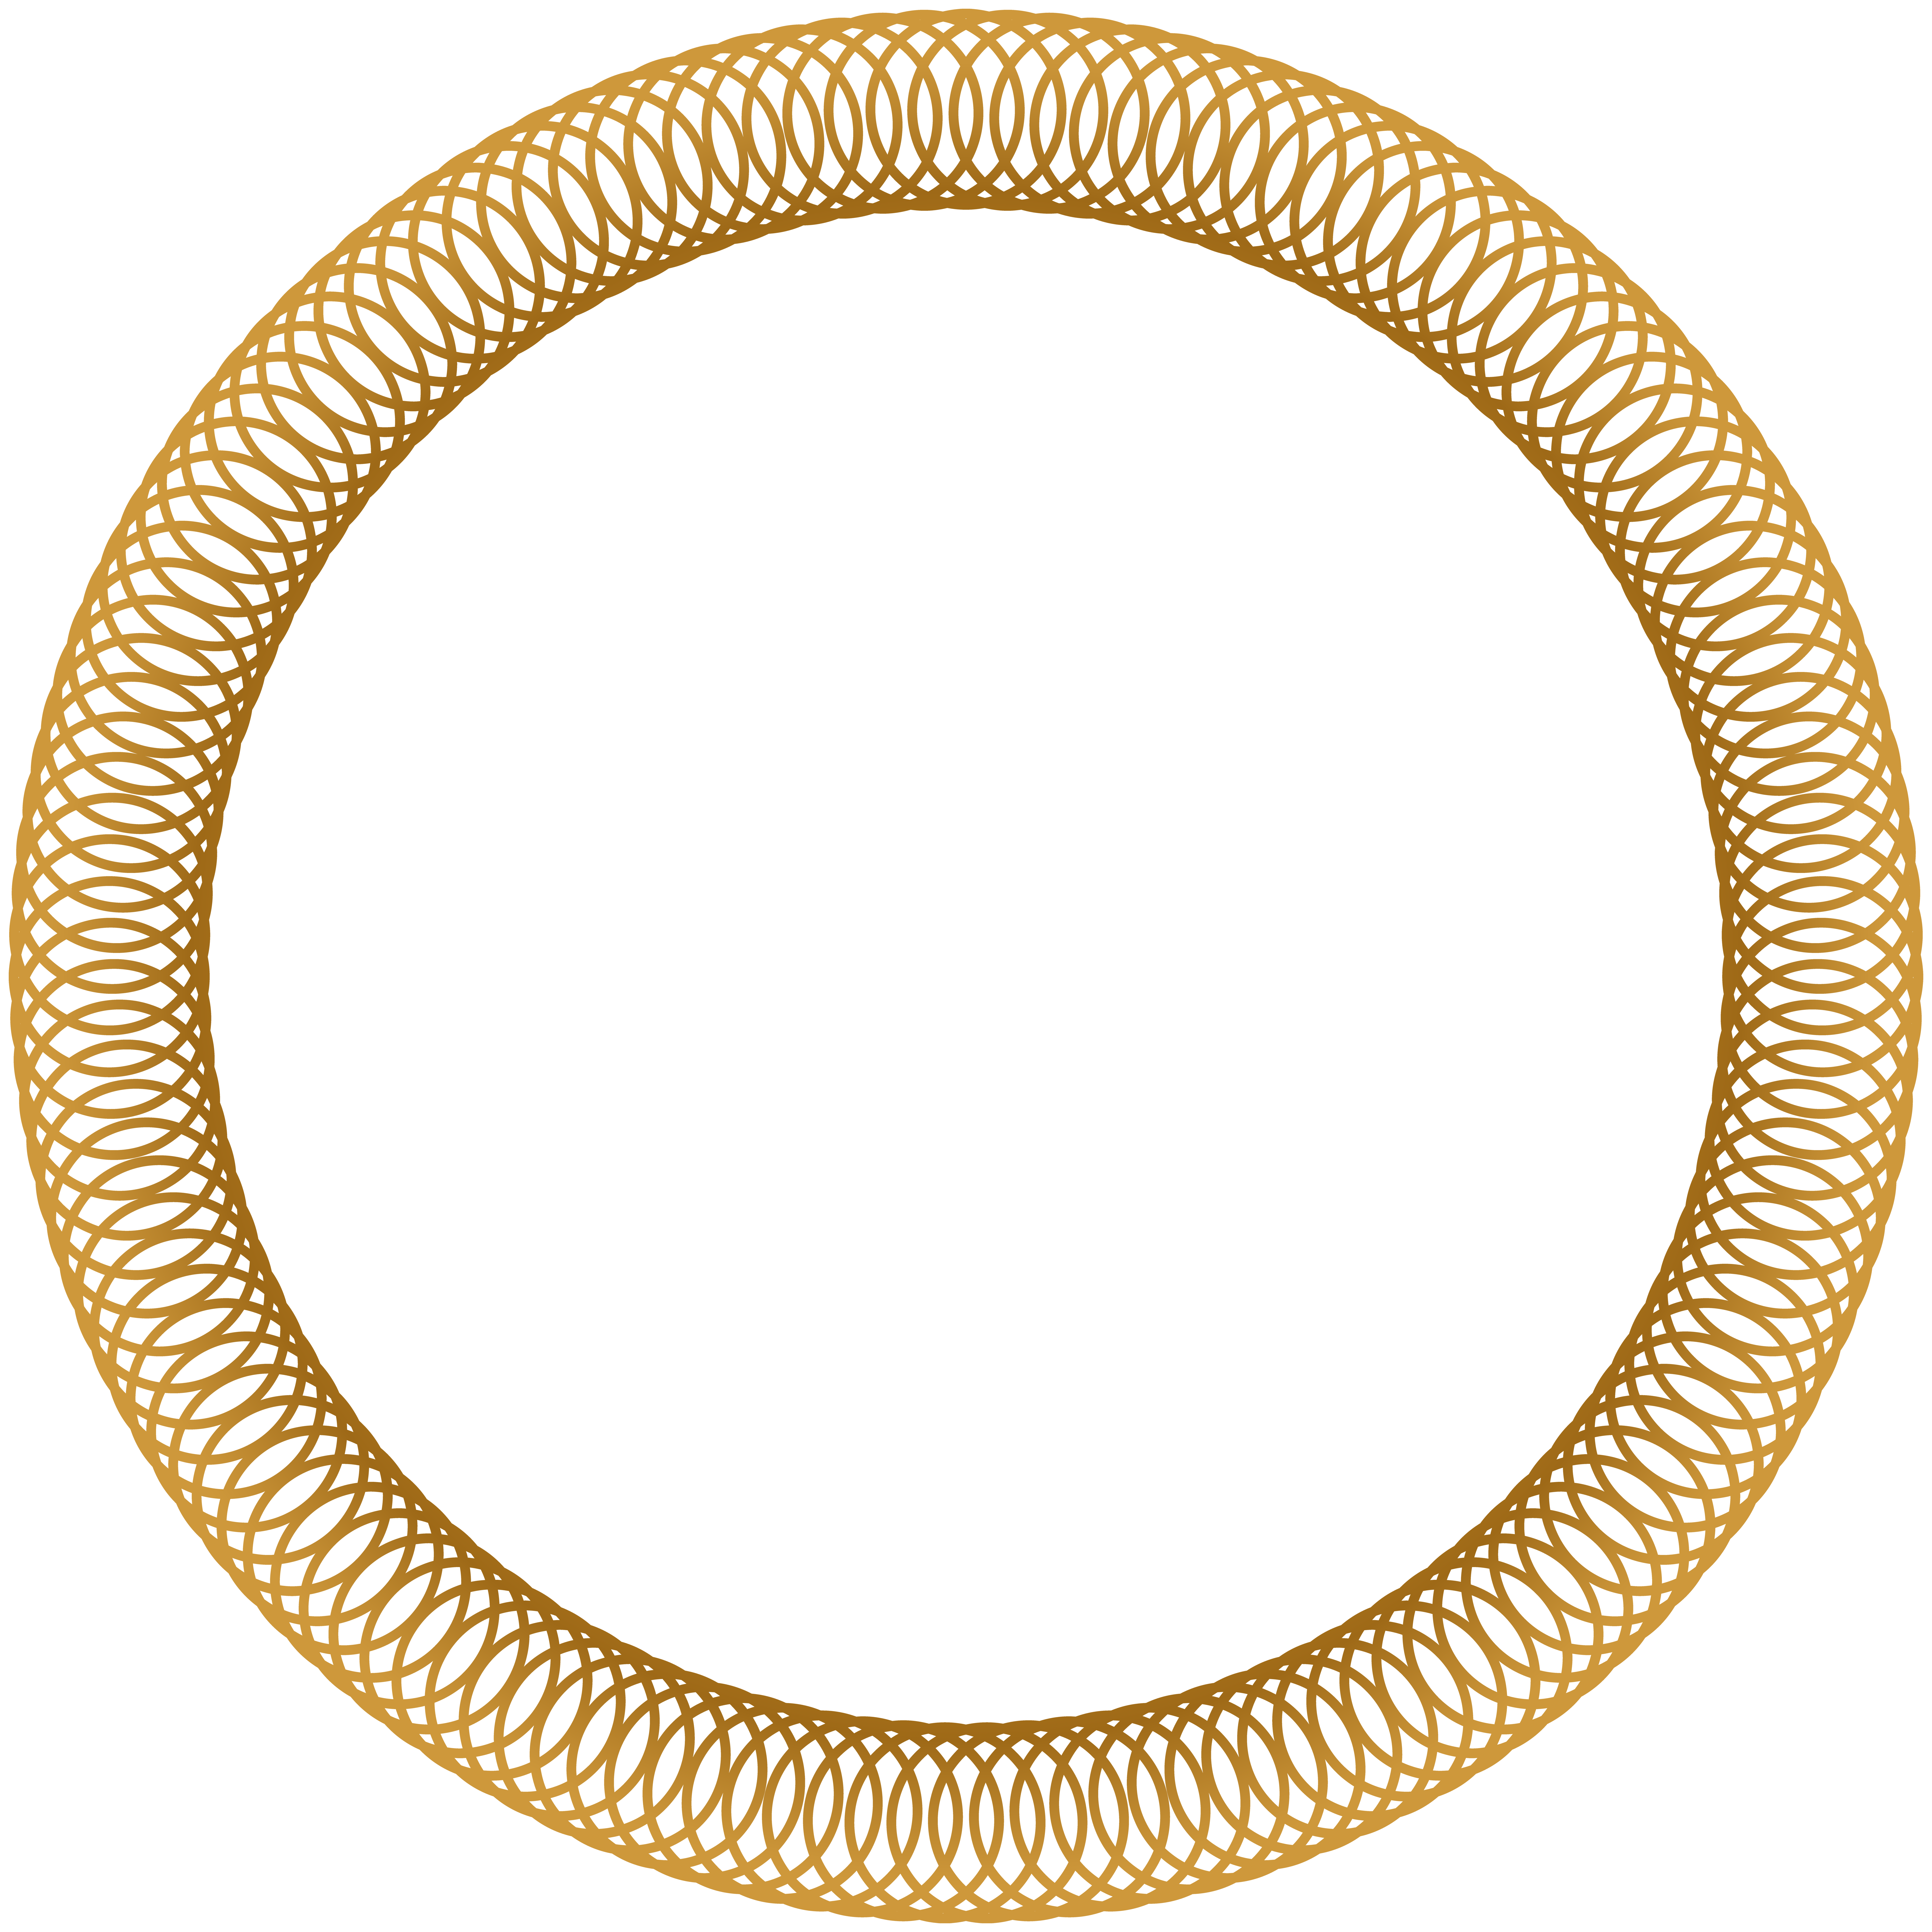 Round Frame Deco Clip Art Png Image Gallery Yopriceville High Quality Images And Transparent Png Free Clip Gold Circle Frames Frame Border Design Clip Art